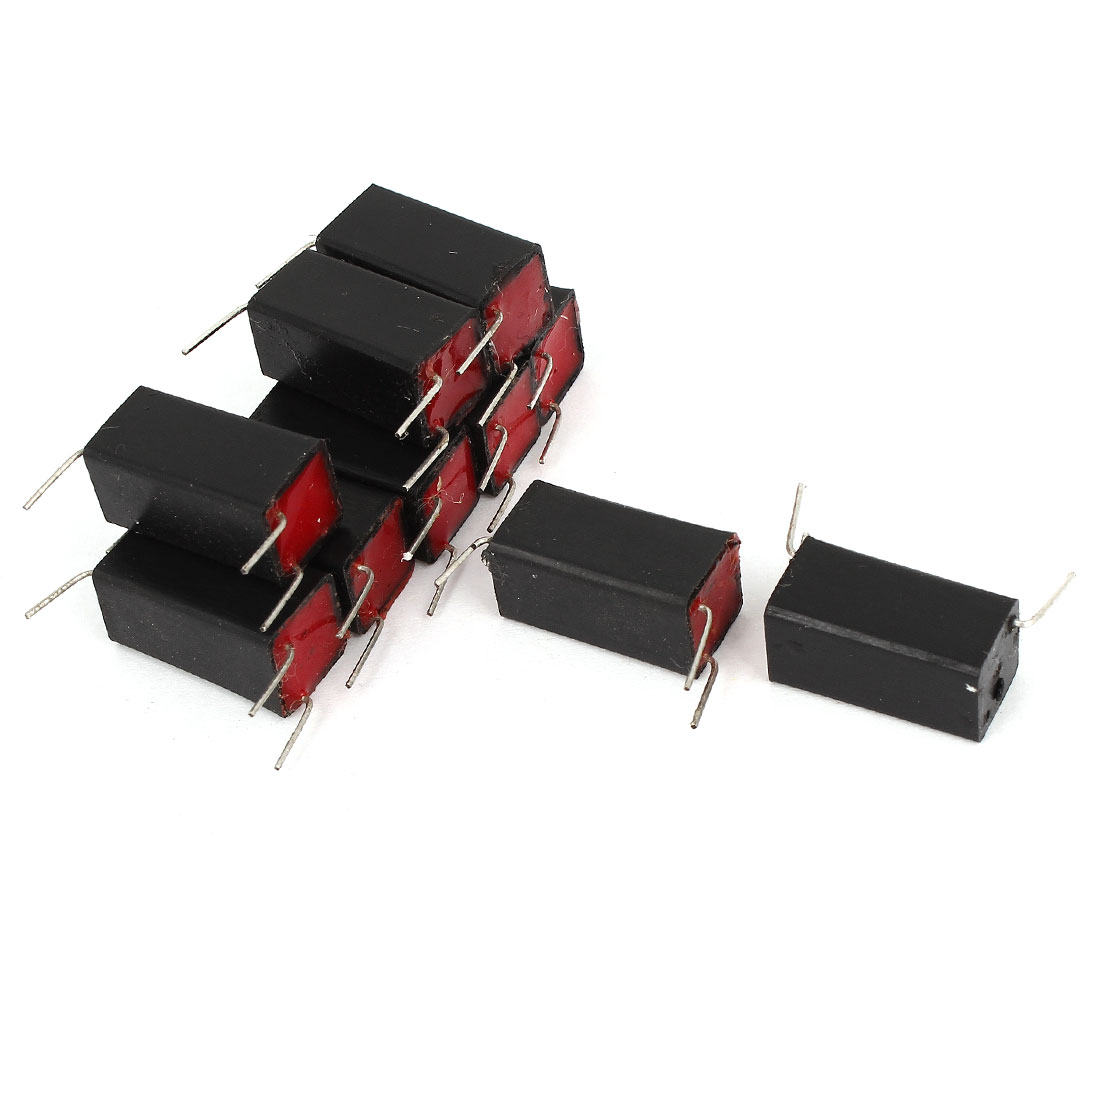 10 Pcs ZS1052-AC Powerful Flash Tube Xenon Trigger Ignition Coil Transformer High Frequency 8KV-10KV